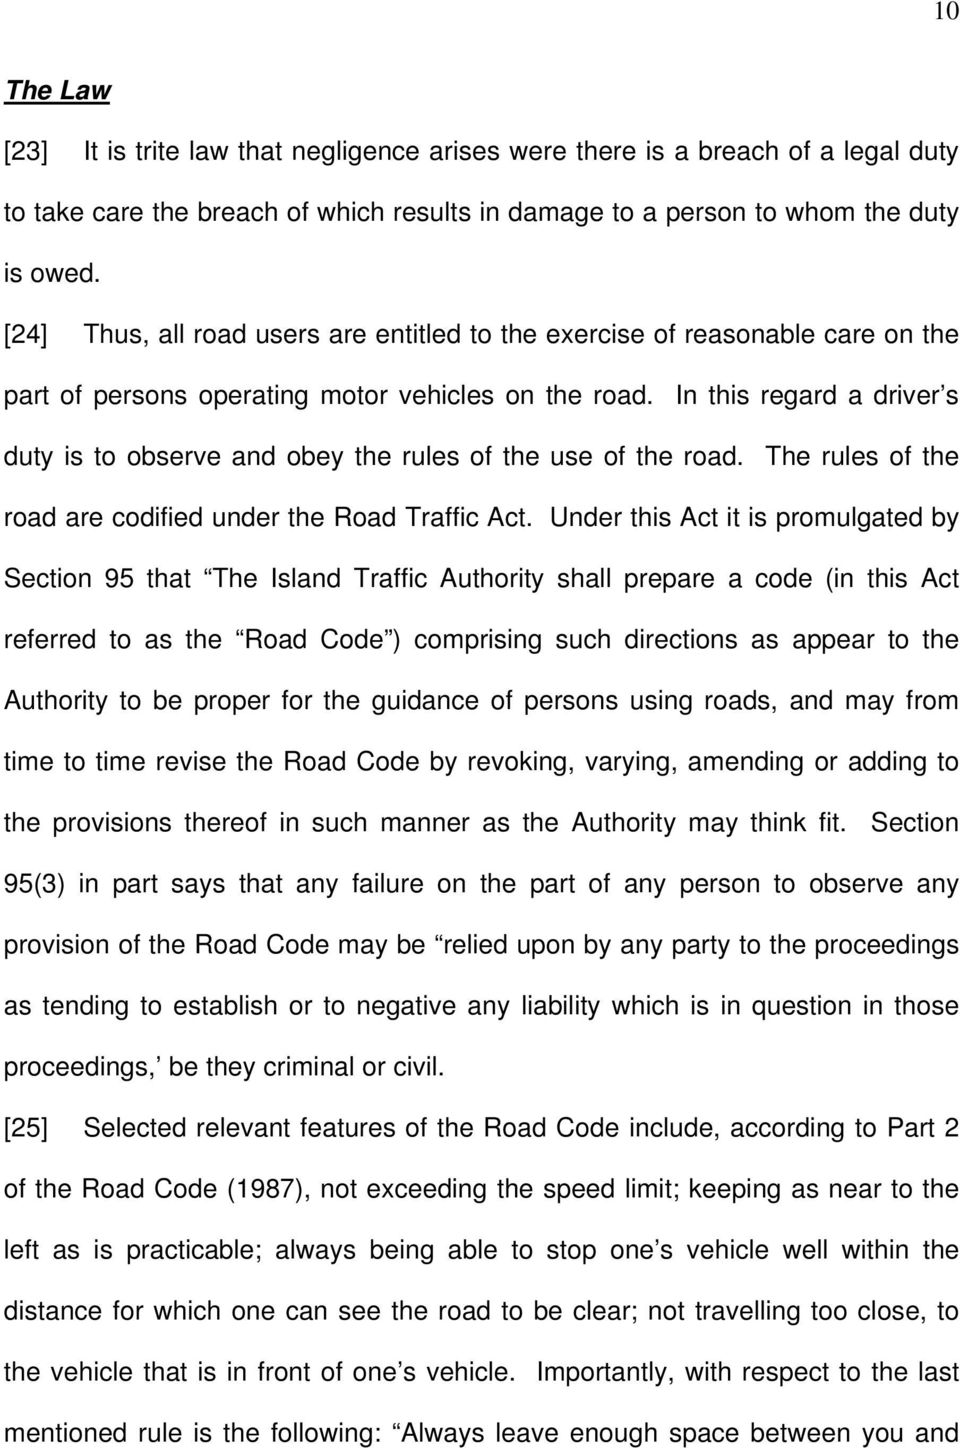 In this regard a driver s duty is to observe and obey the rules of the use of the road. The rules of the road are codified under the Road Traffic Act.